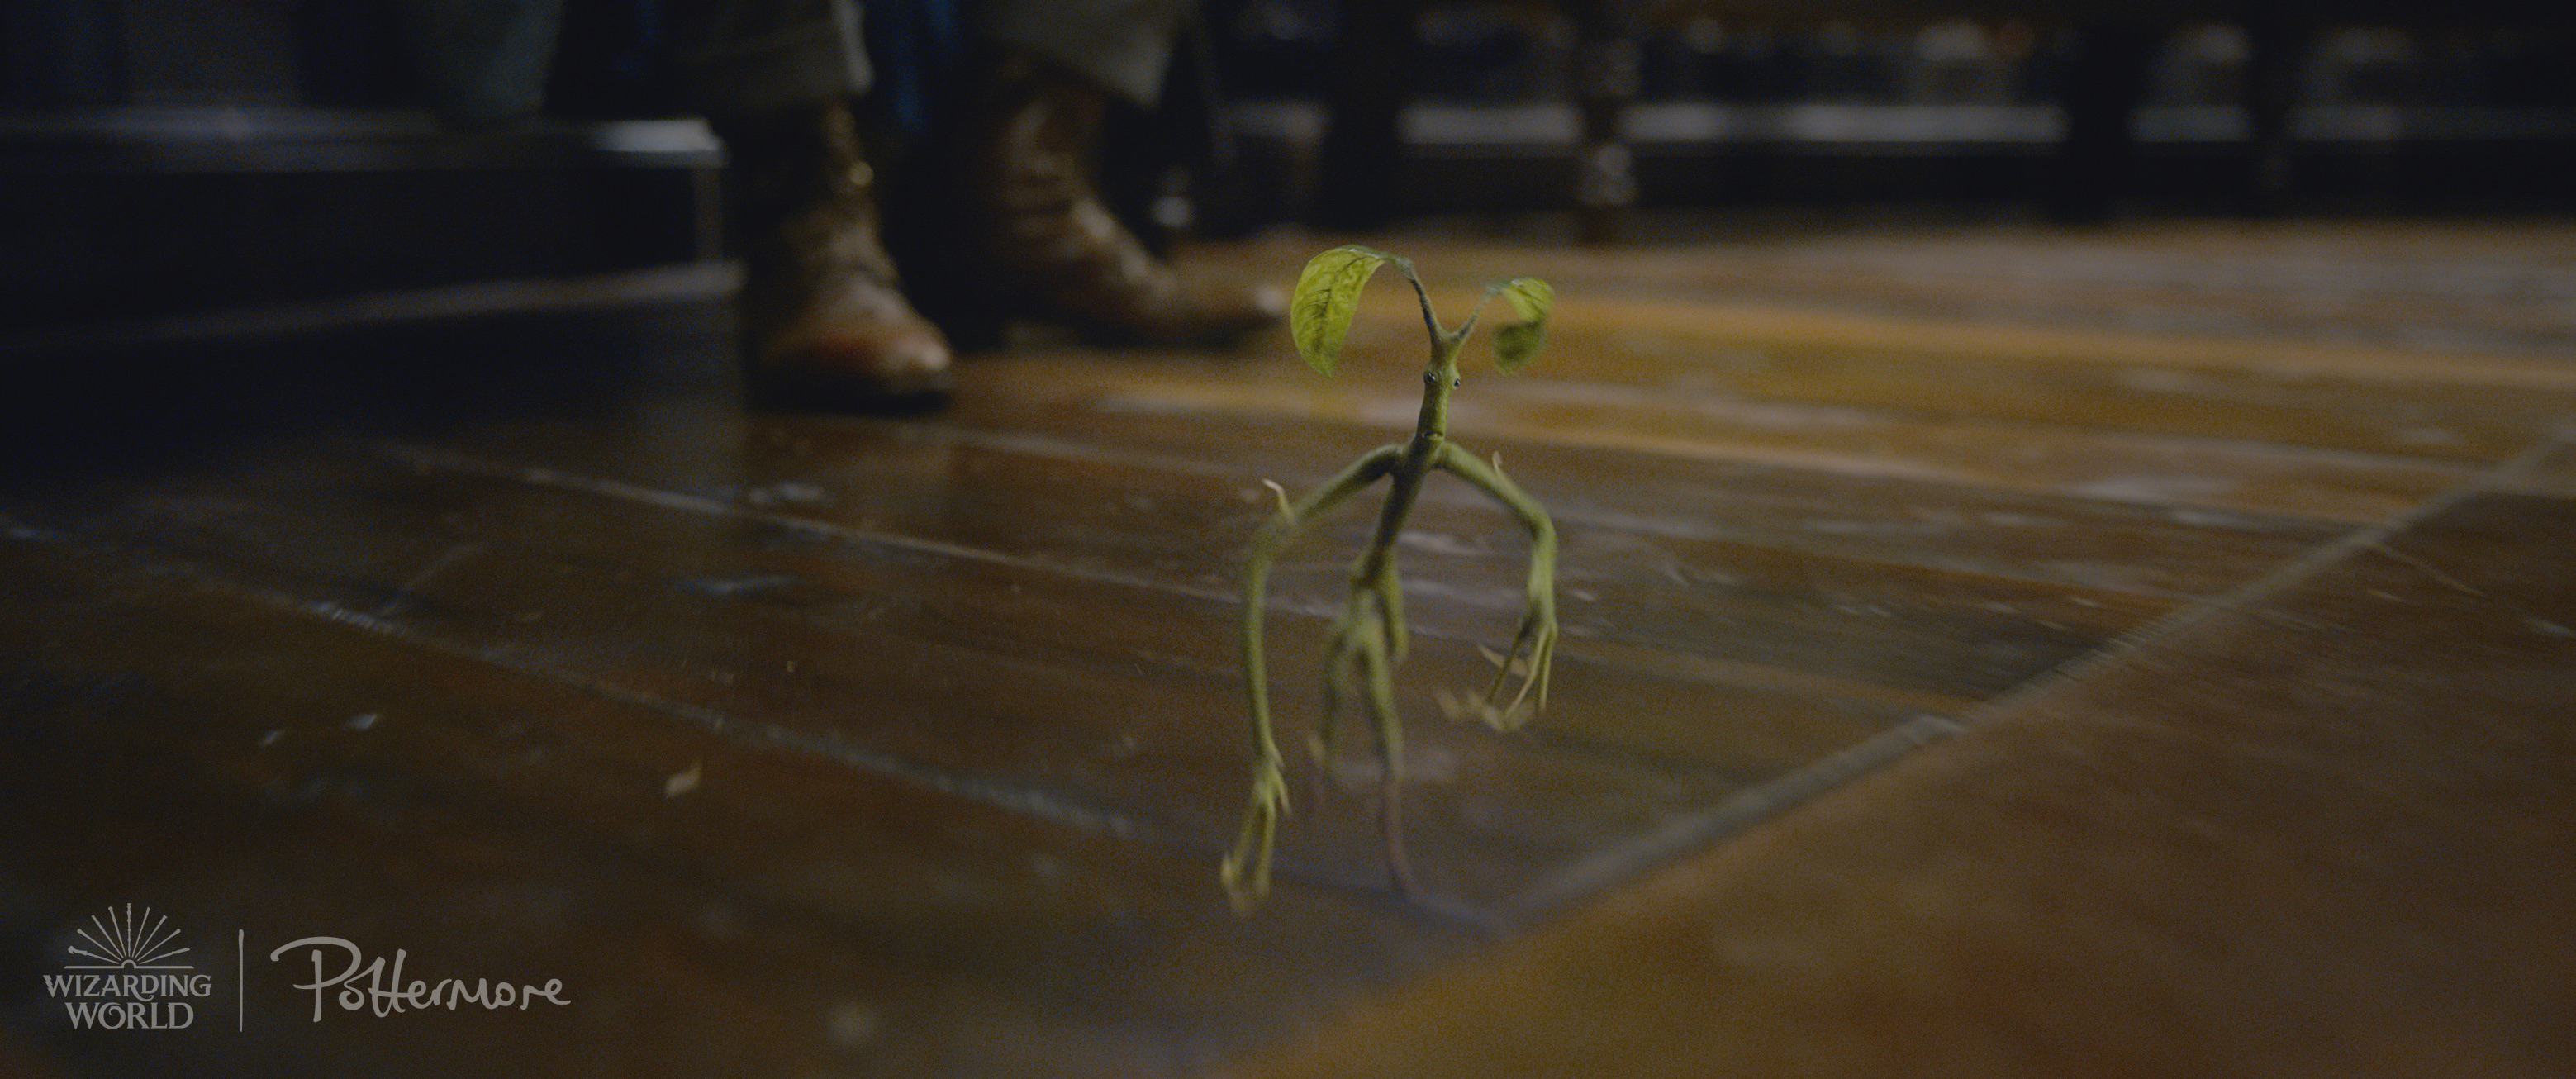 Pickett the Bowtruckle in the trailer for Fantastic Beasts: Crimes of Grindelwald